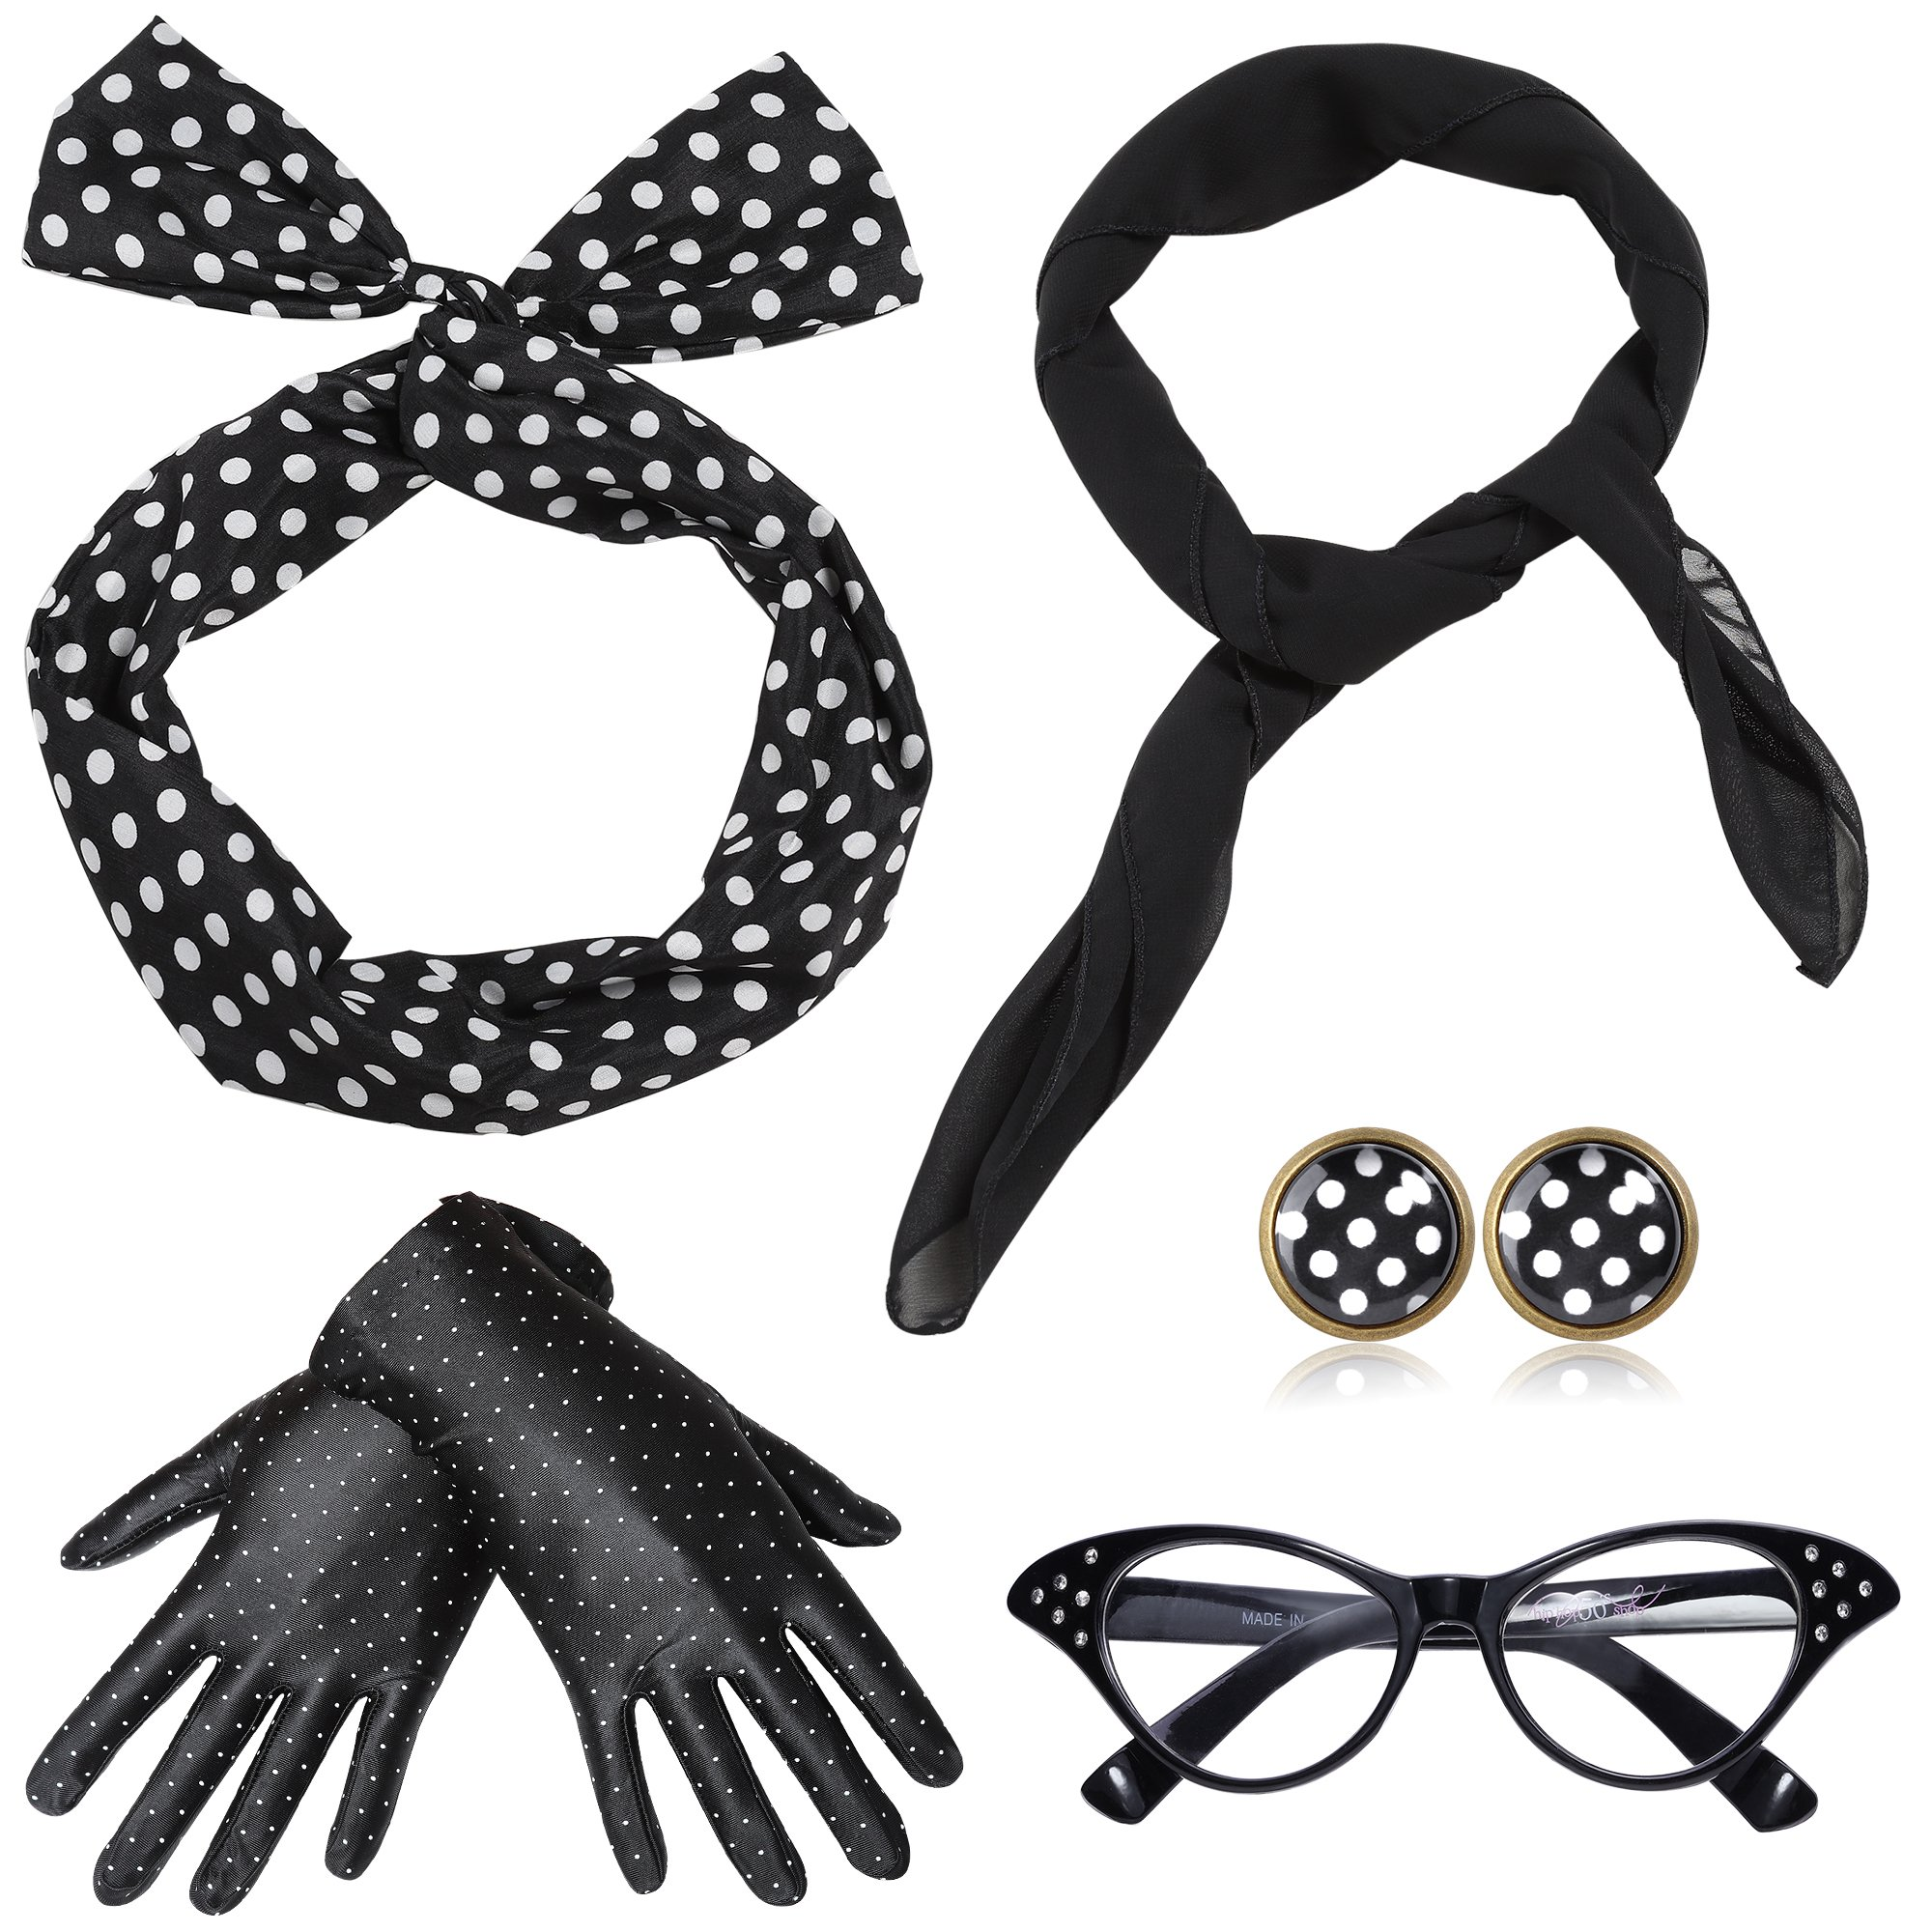 ArtiDeco 1950s Accessories Bandana Tie Headband Chiffon Scarf Cat Eye Glasses 50s Earrings and Gloves 50s Costume Accessories (Black)